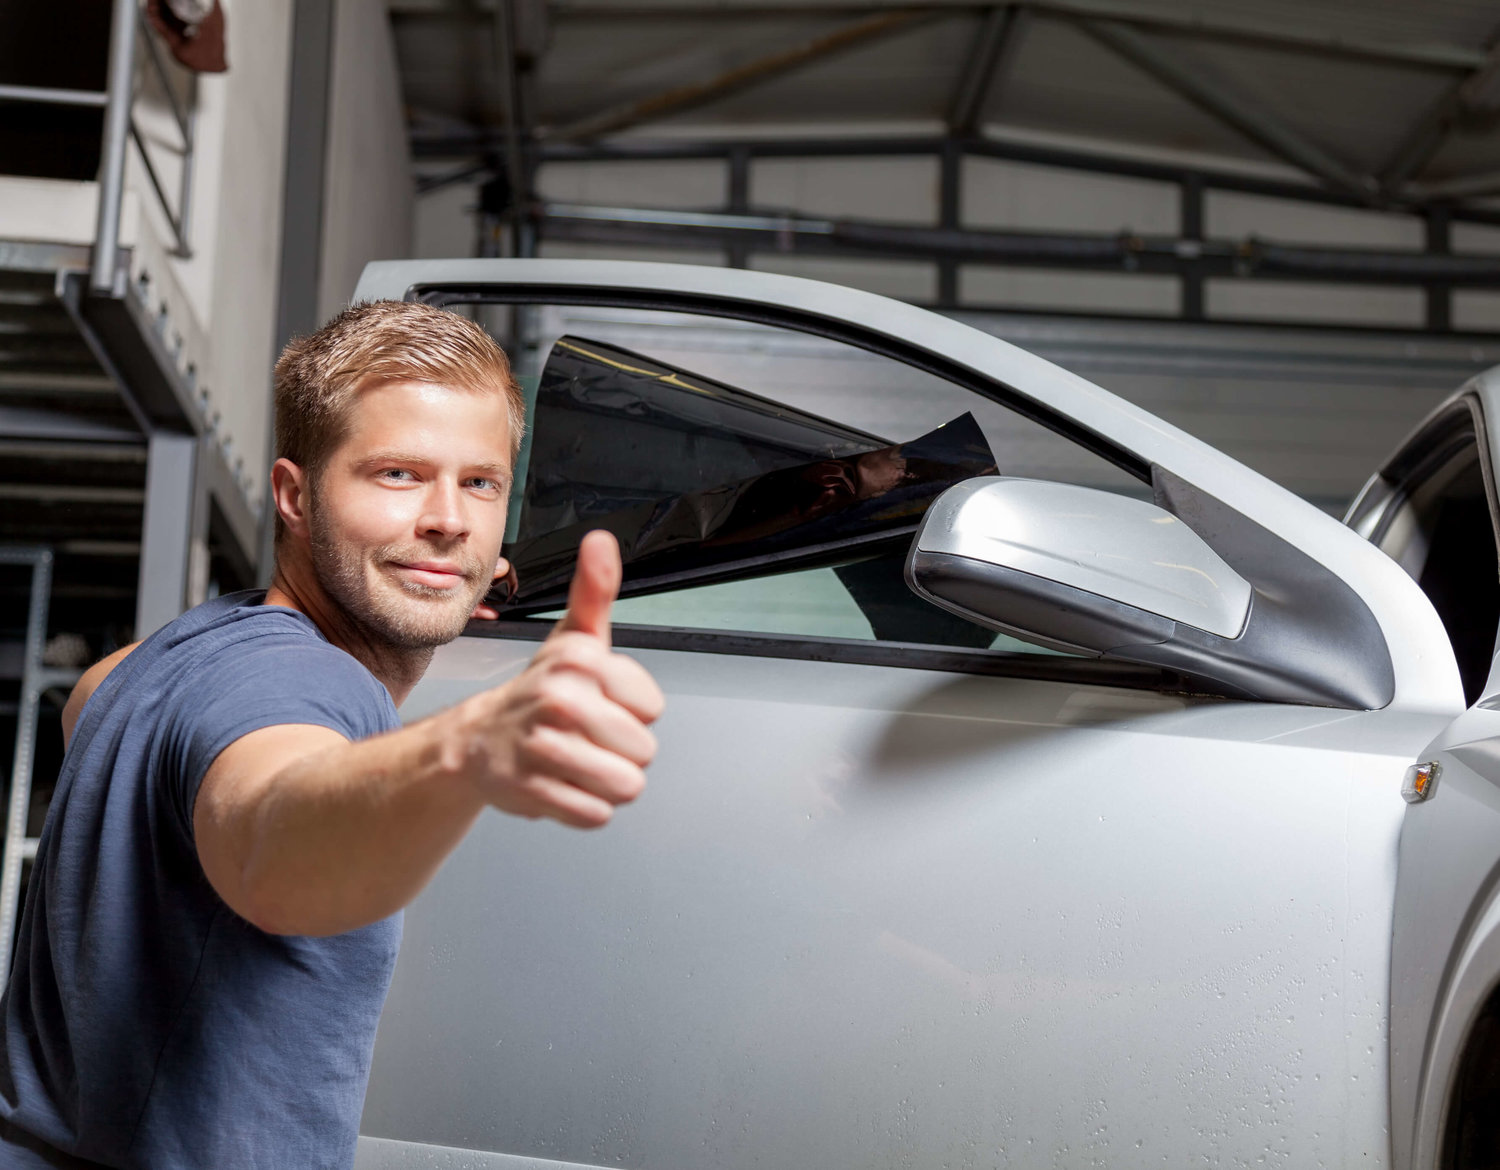 626da829e9 Car Window Tinting Frequently Asked Questions